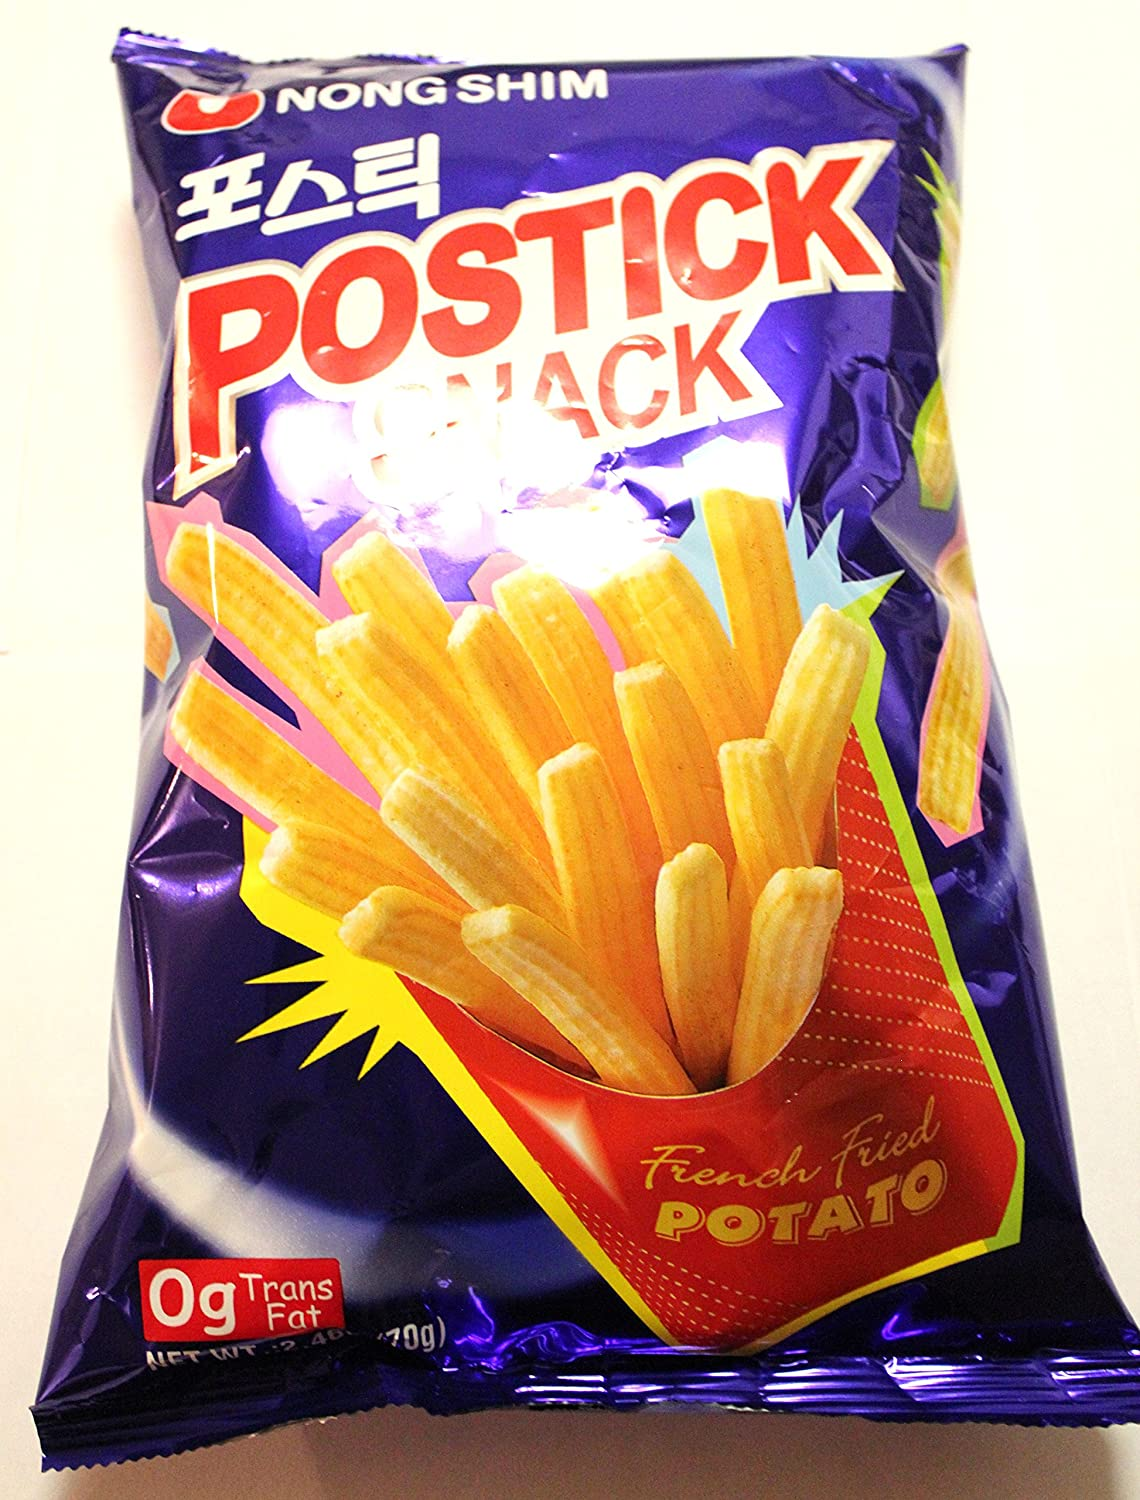 Nong Shim Postick Max 63% OFF Snack Store French Fried 70g Chips Potato 4 Pack of